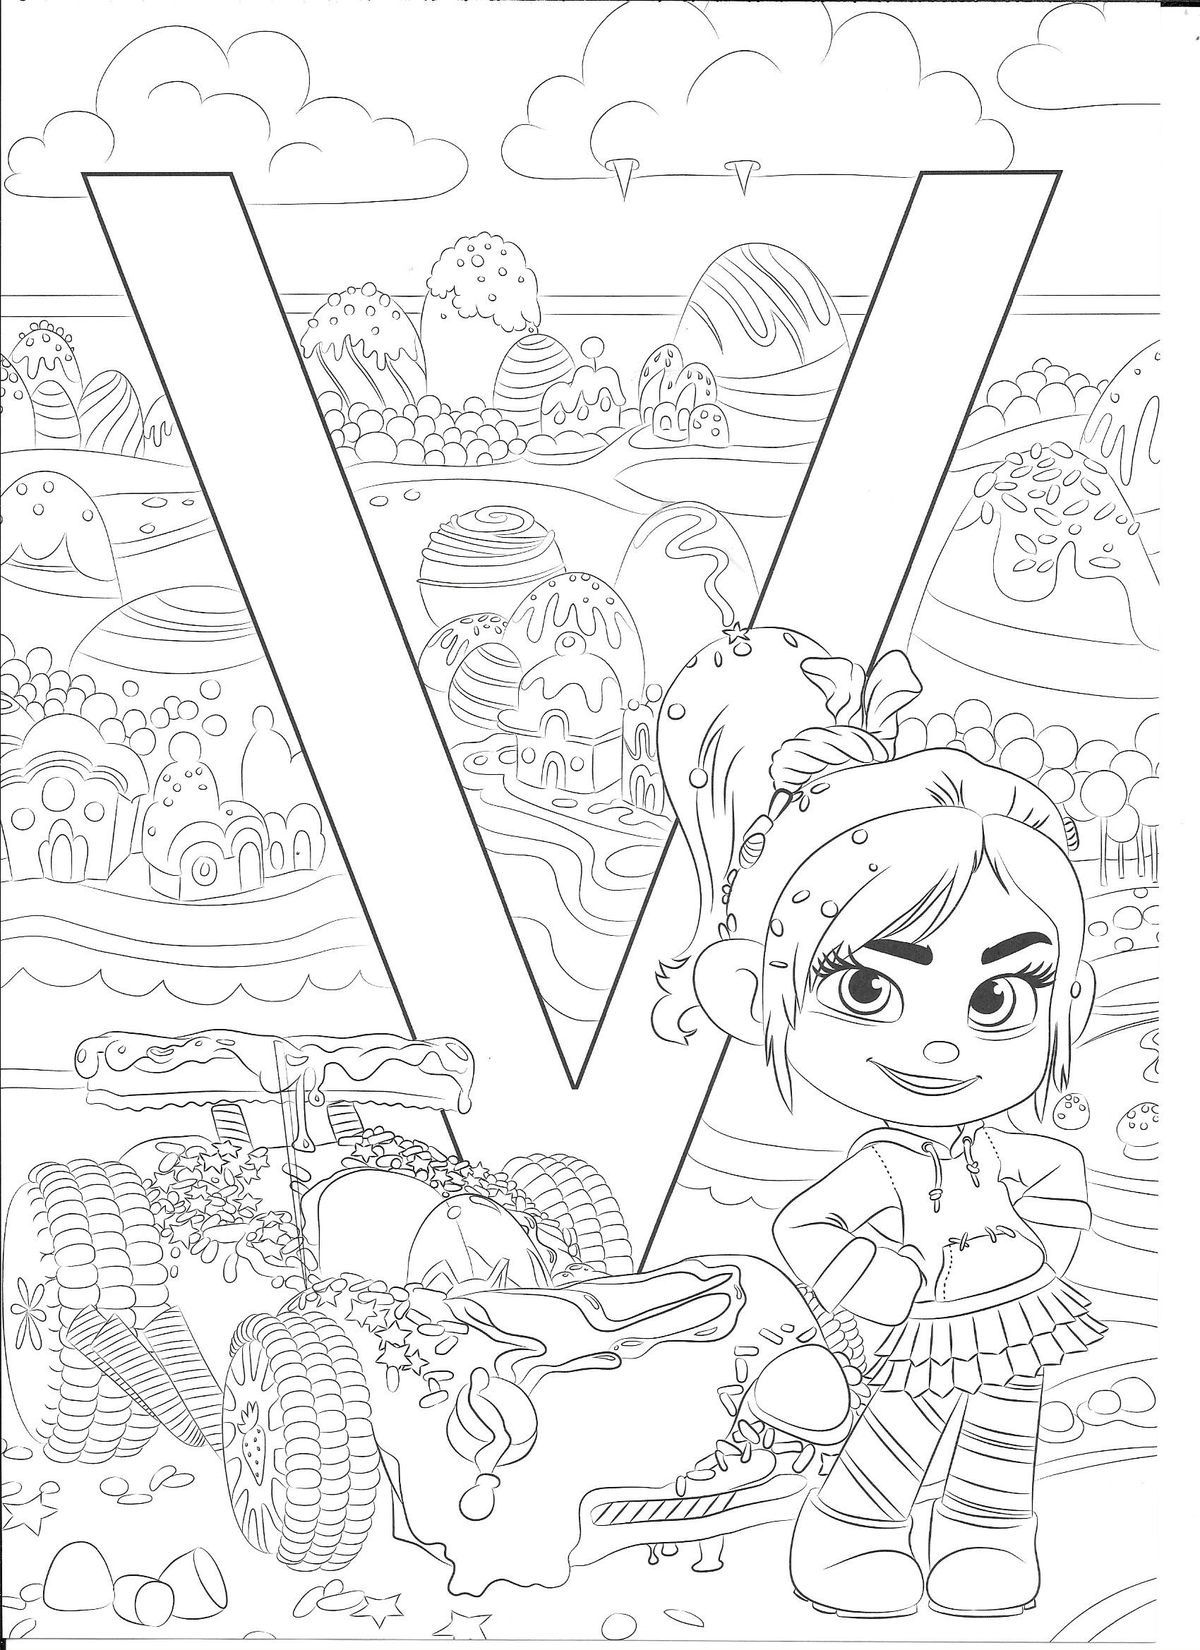 Pin by Mini on Alphabet Coloring Sheets | Disney coloring ...